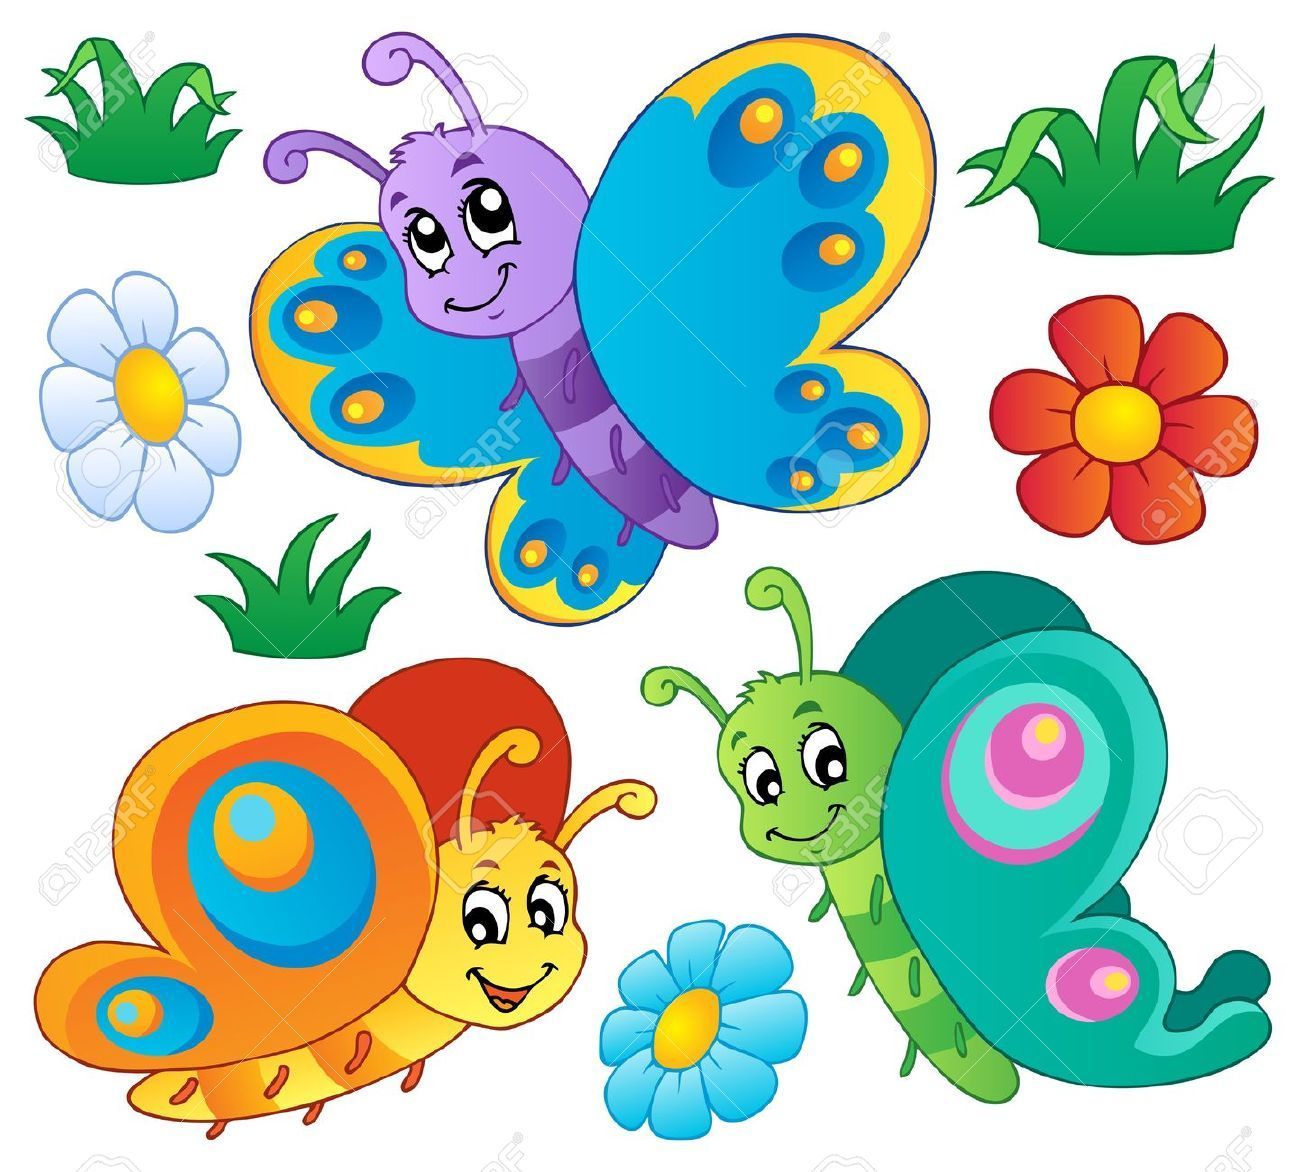 Butterfly Clipart Images, Stock Pictures, Royalty Free.